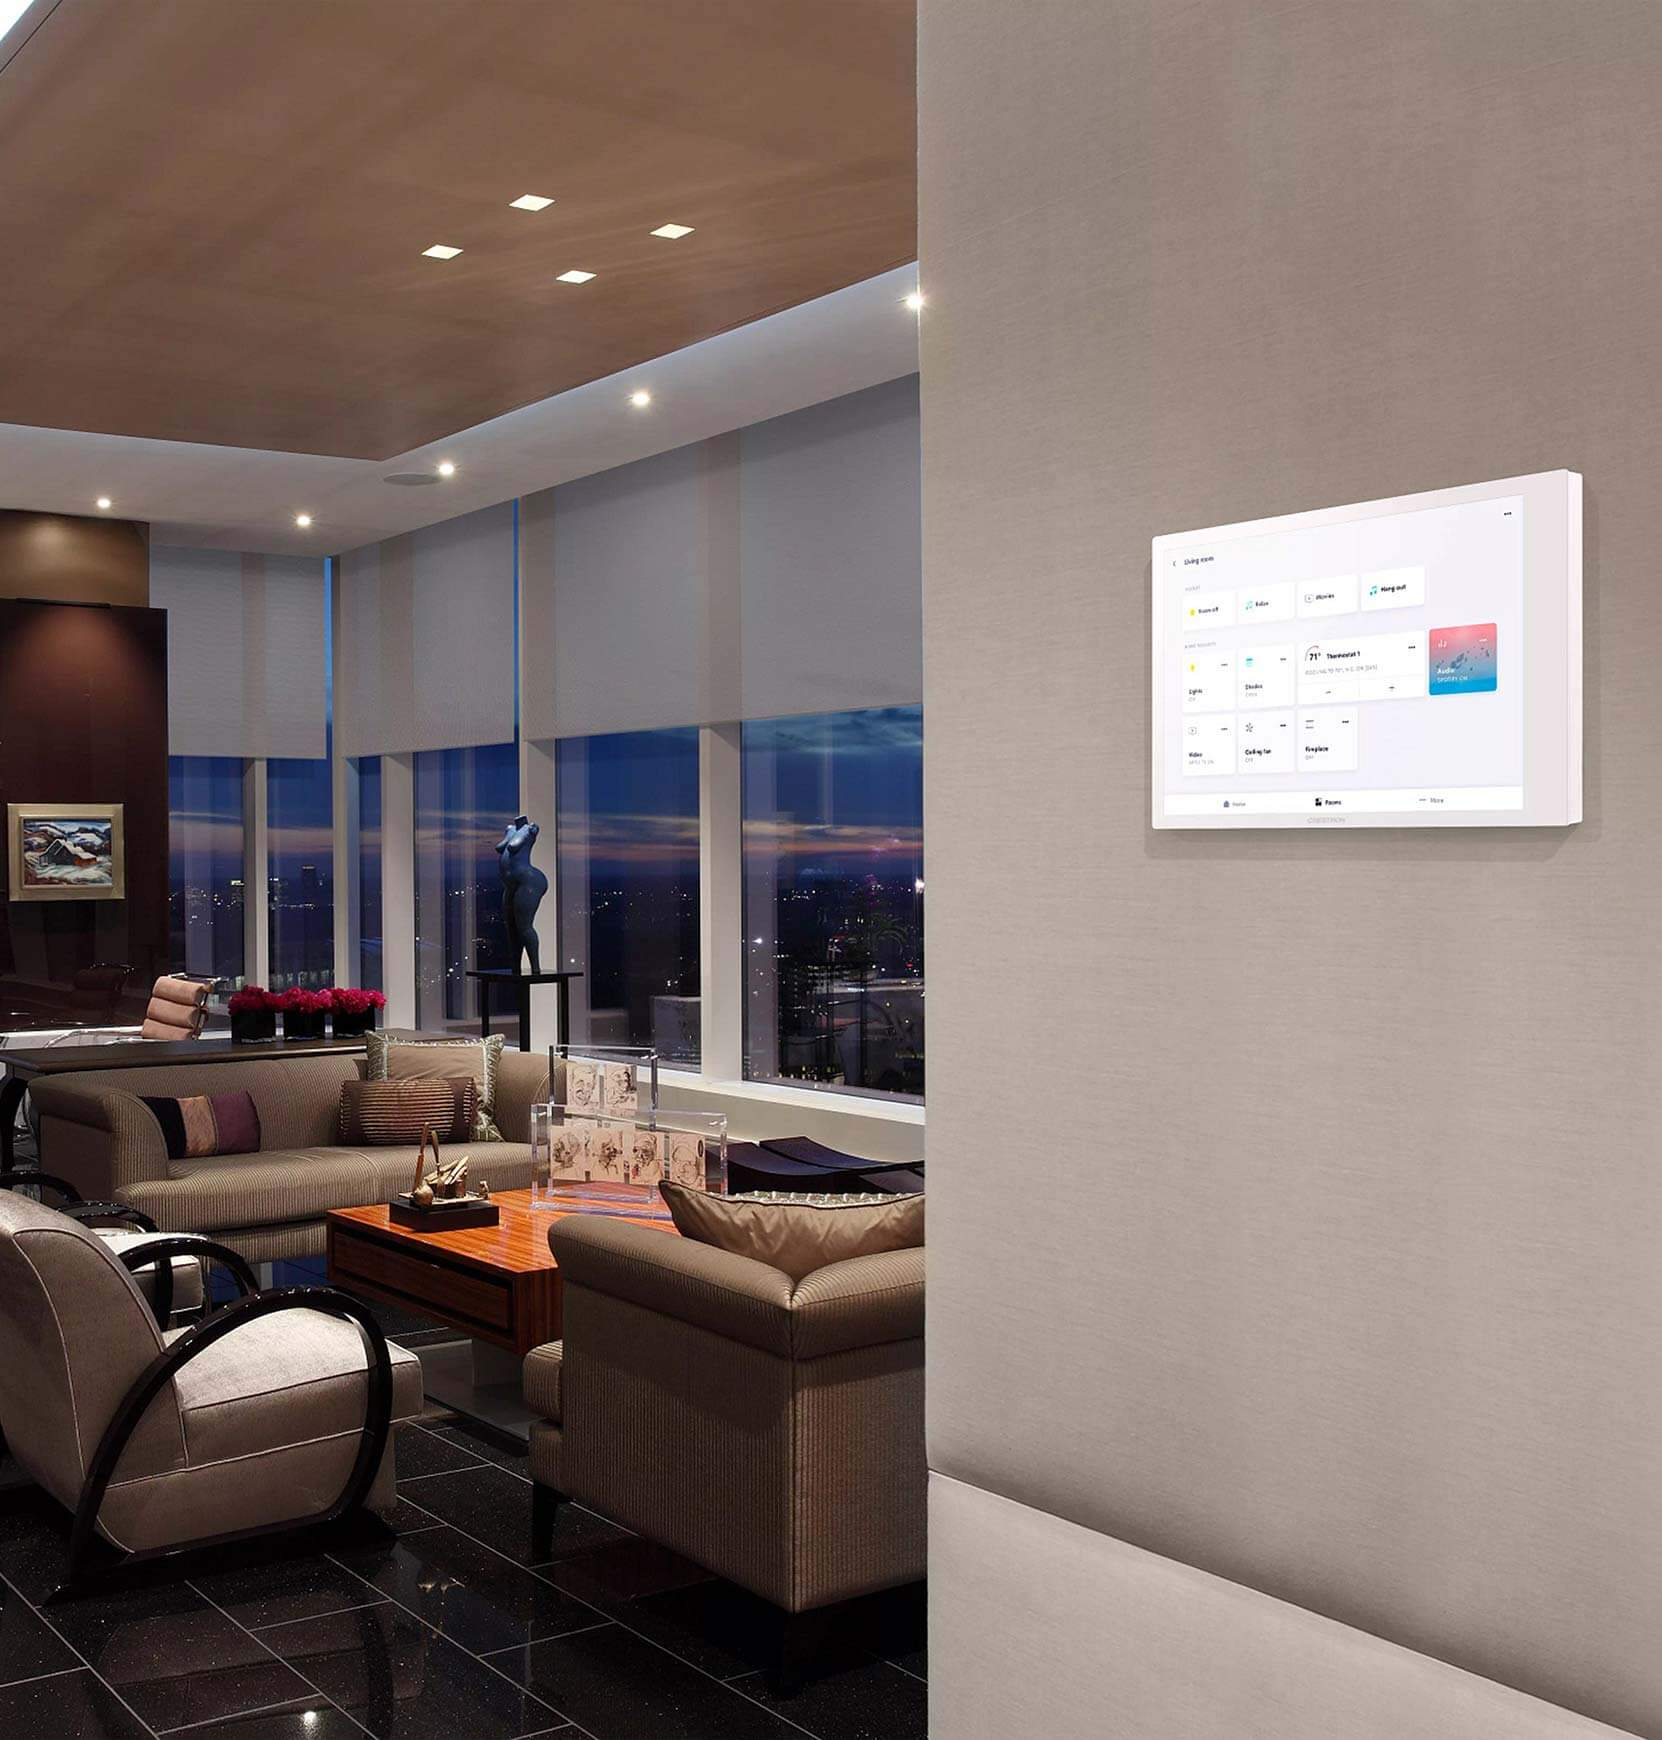 Lighting solutions that enhance your quality of life